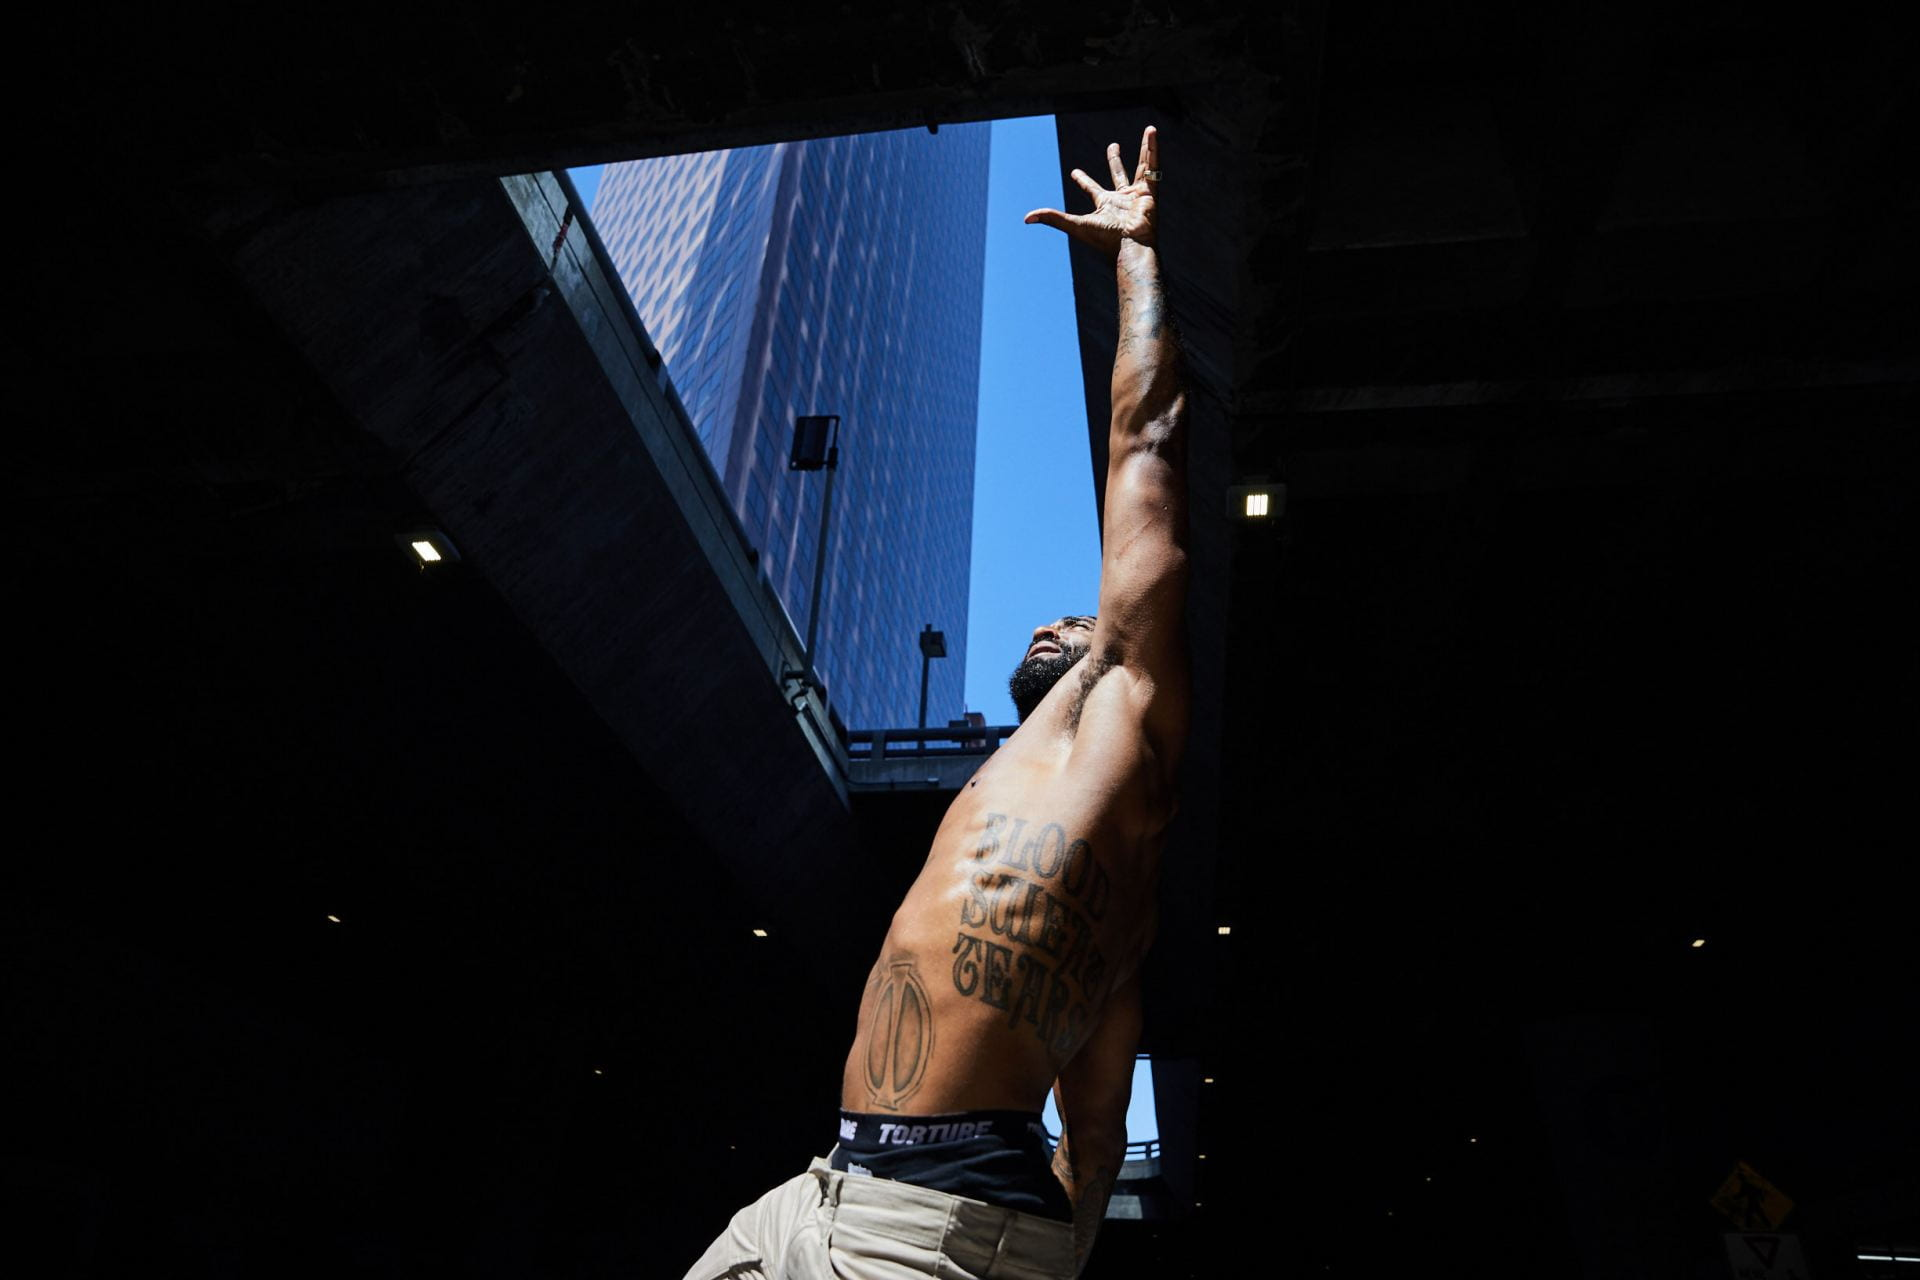 A man dances in the streets shirtless